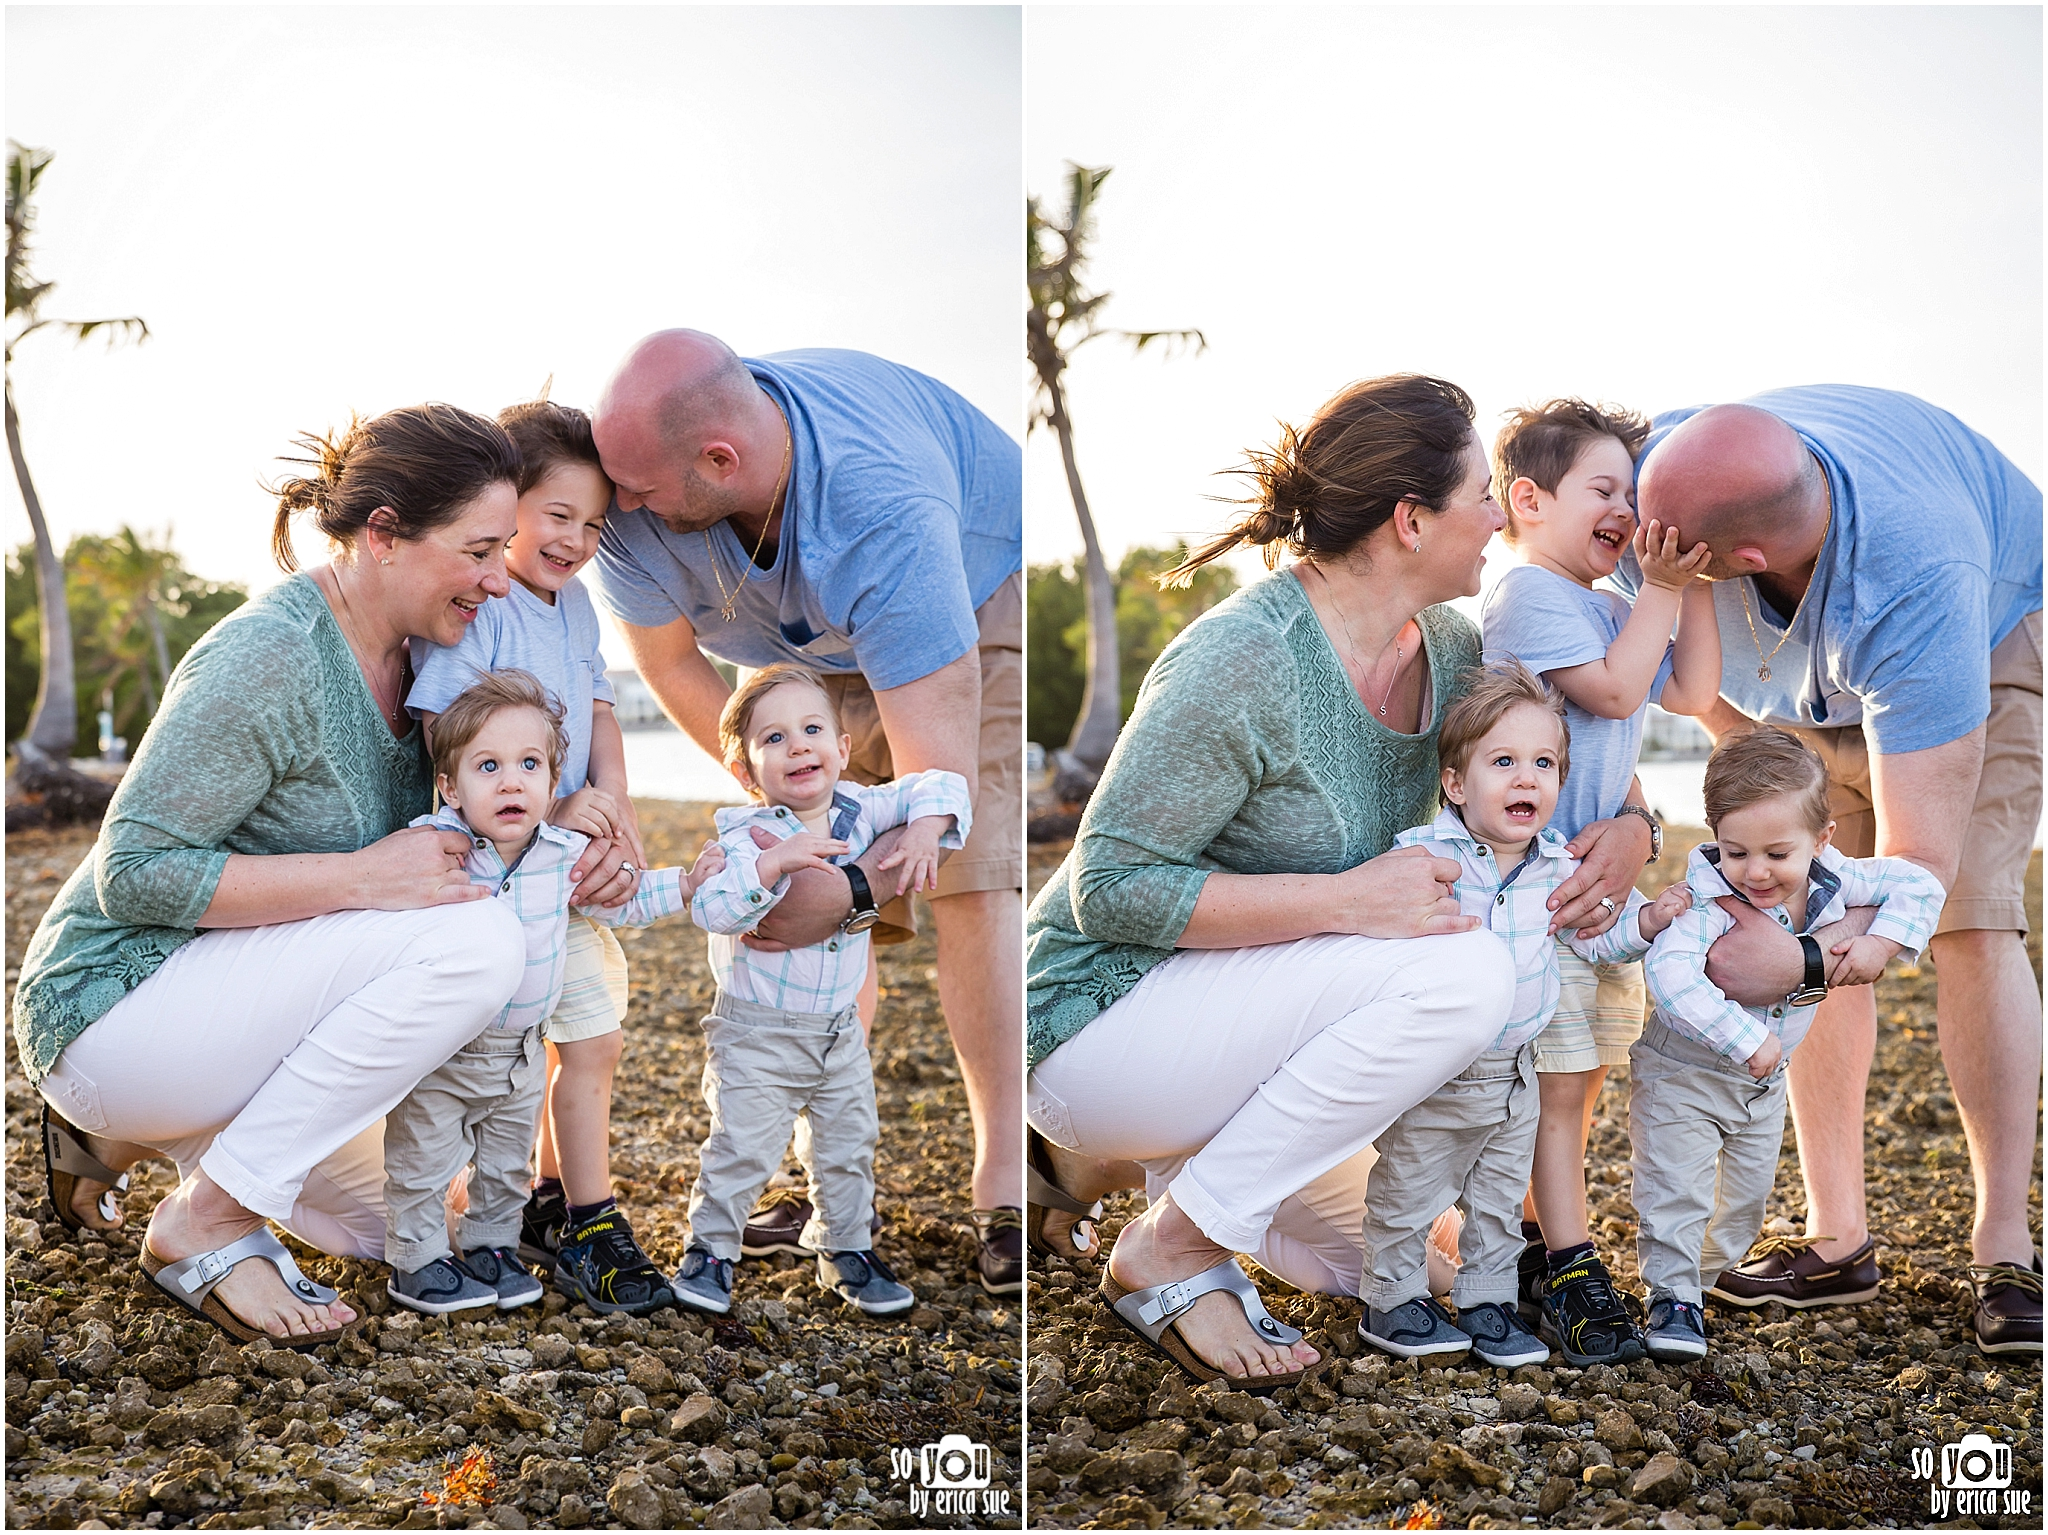 matheson-hammock-family-photography-so-you-by-erica-sue-cake-smash--3 (2).jpg